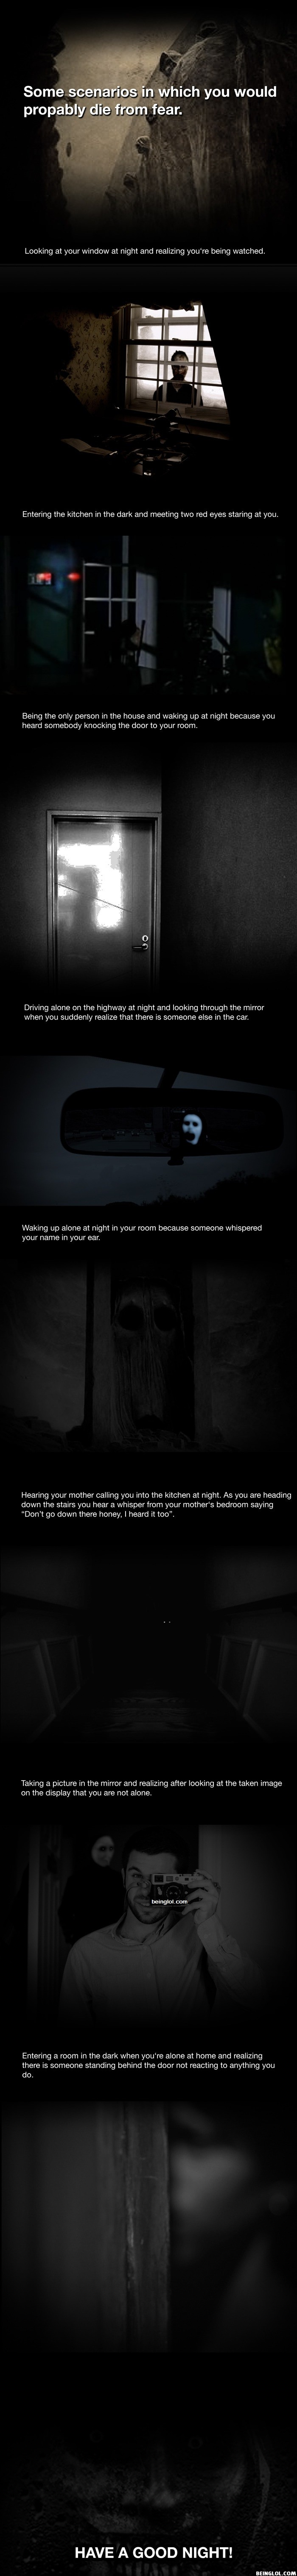 Scenarios In Which You Would Probably Die From Fear